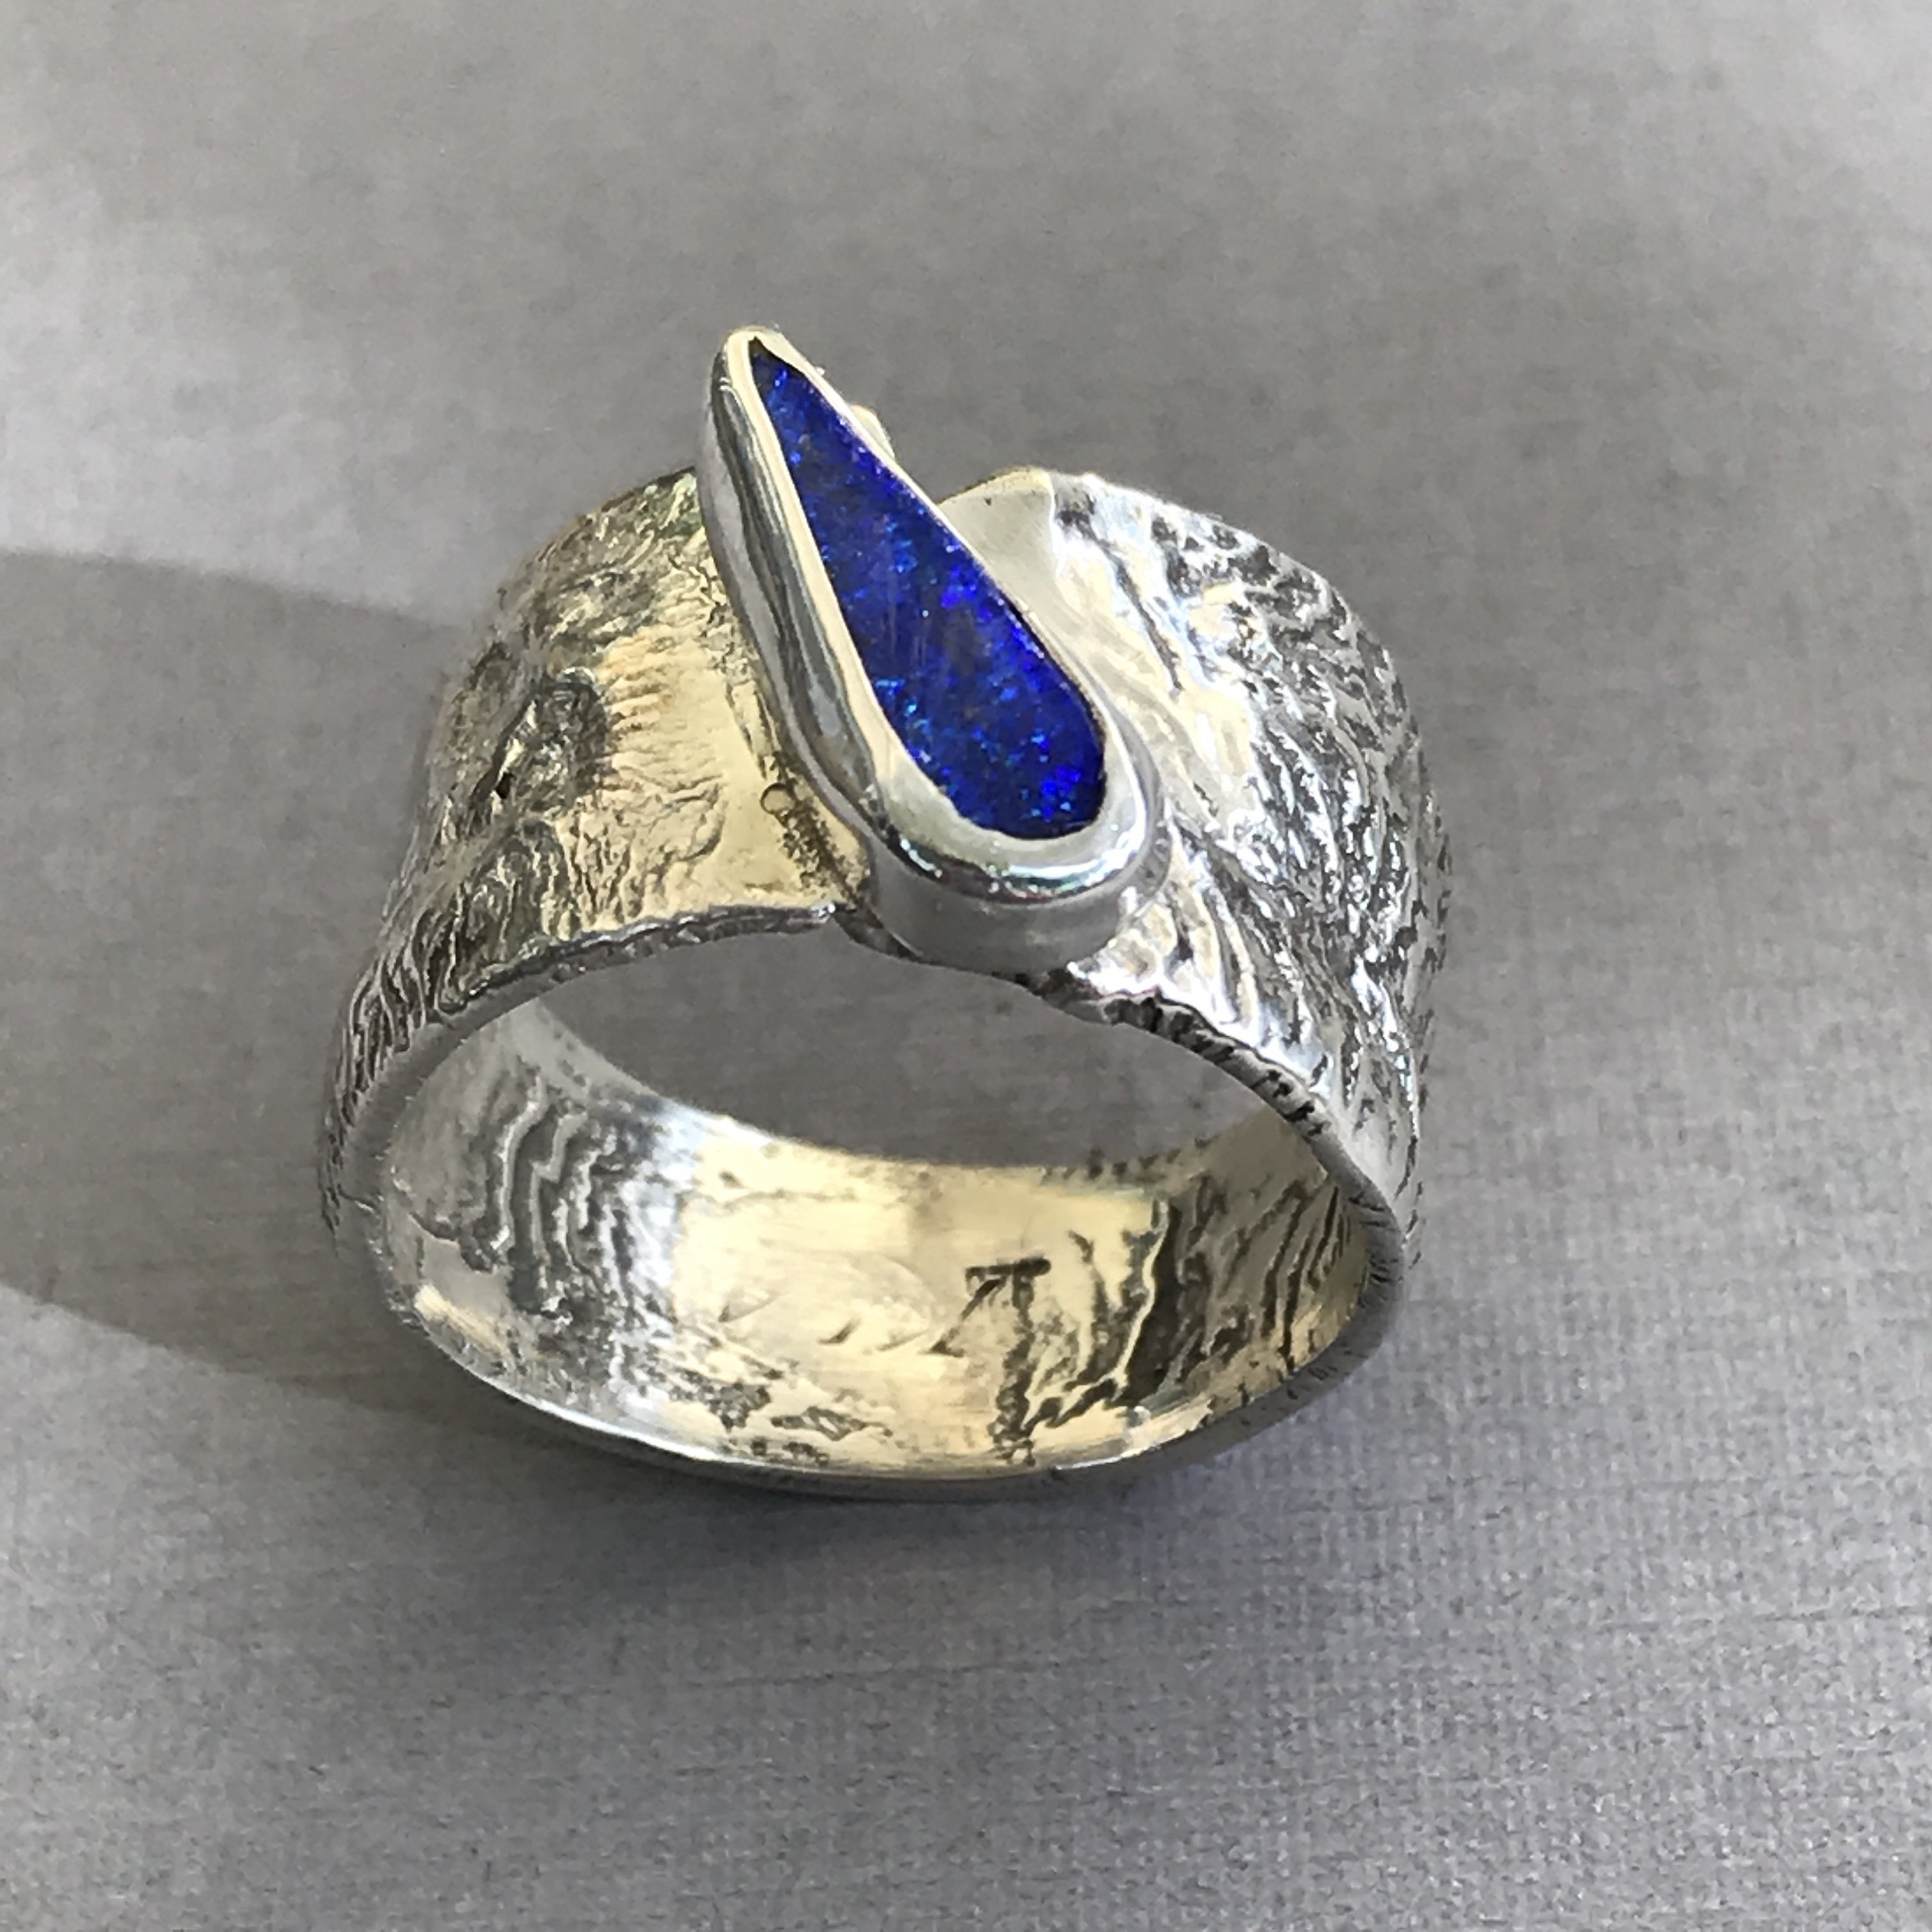 Wide band Australian Boulder Opal ring in reticulated silver